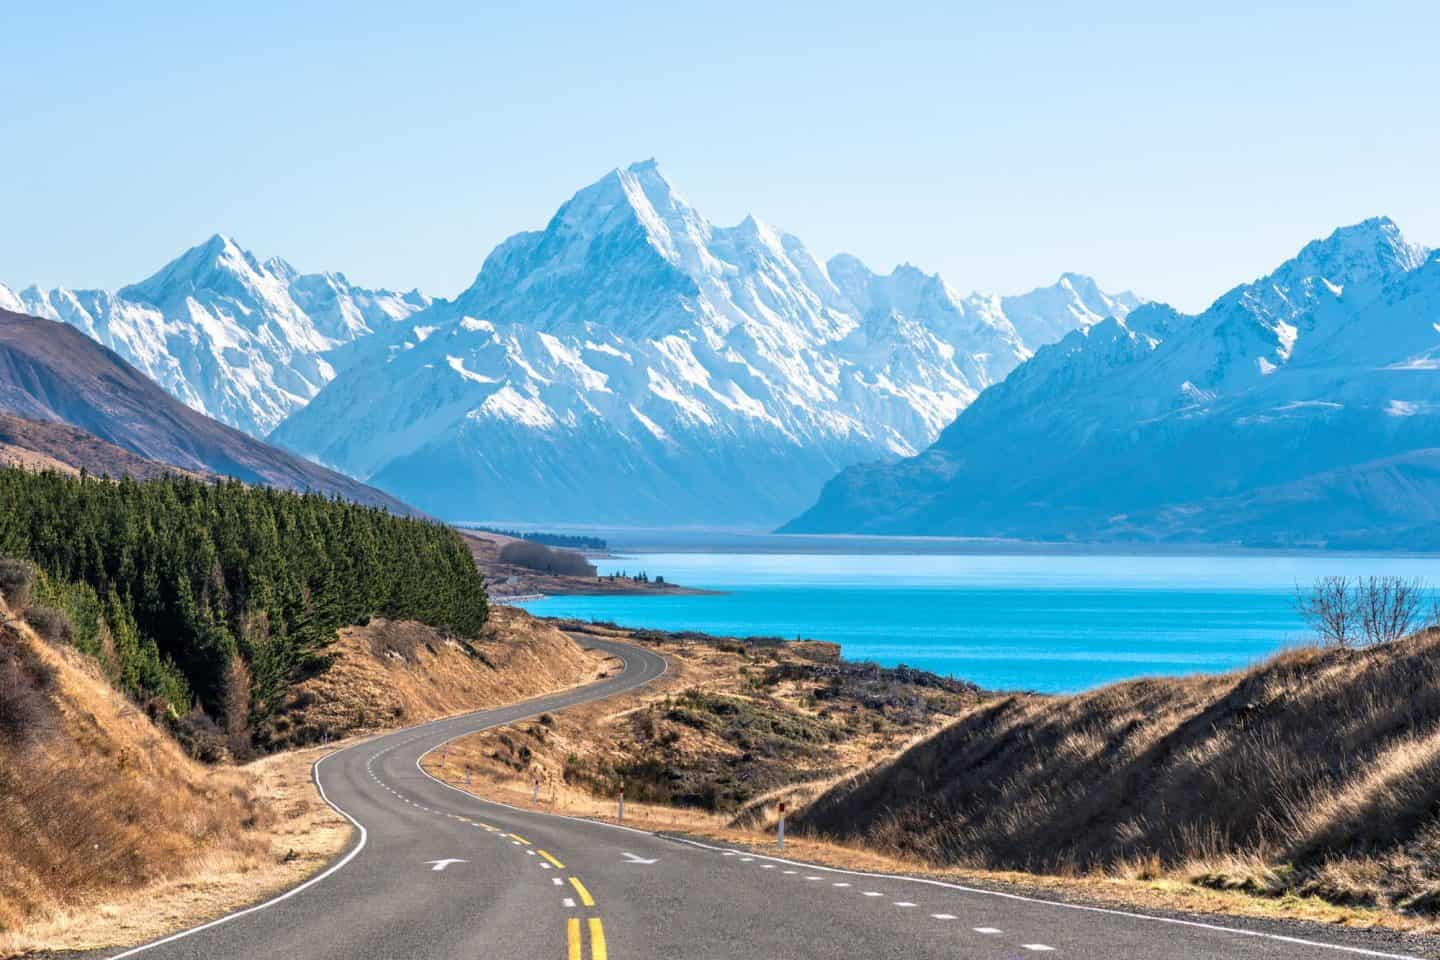 NZ landscape photography capturing the road to Mt Cook and Aoraki National Park.